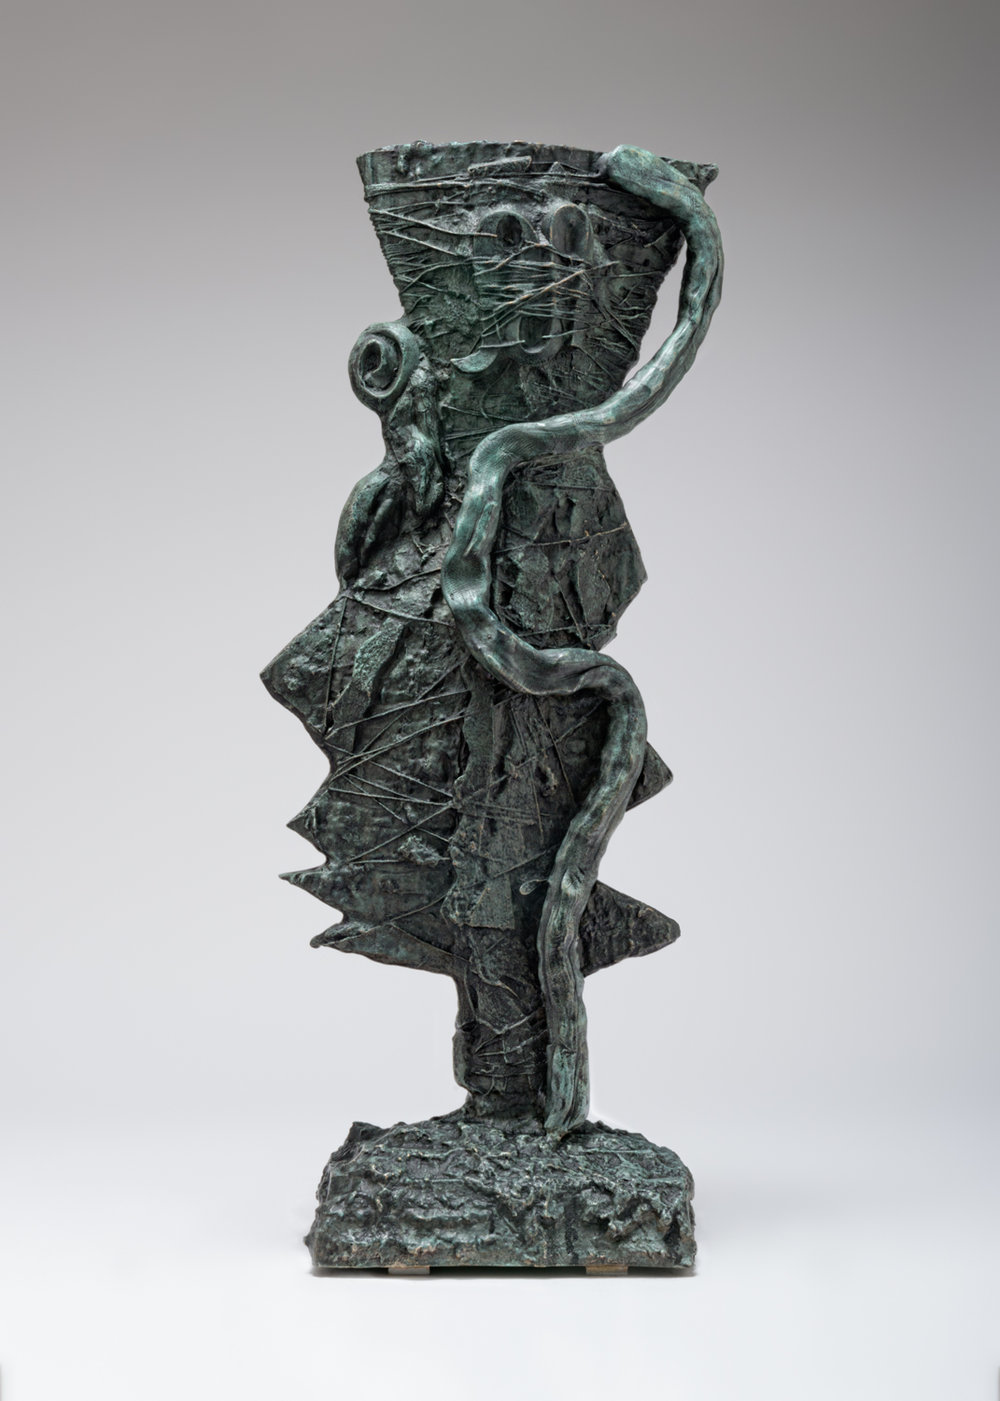 William J. O'Brien  Untitled  2017 Bronze 28 ¾h x 11 ½w x 7d in WOB1190